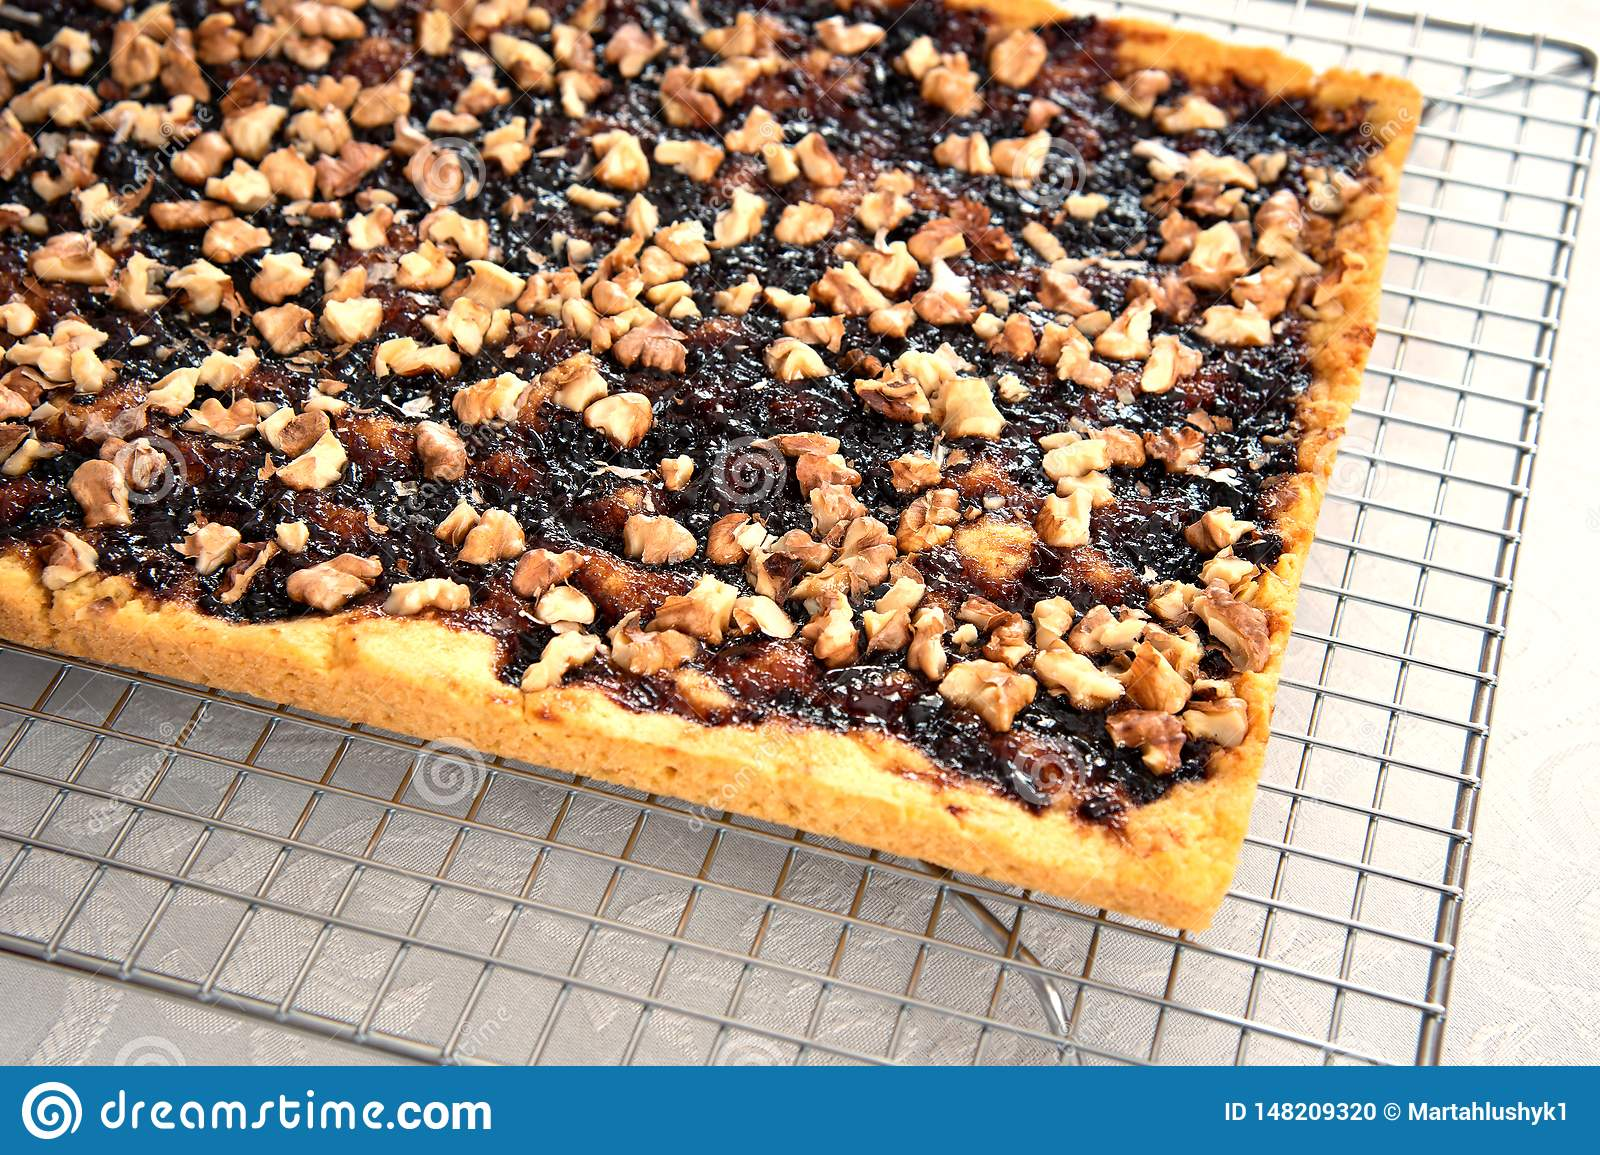 Shortbread pie with jam and walnuts on cooling rack